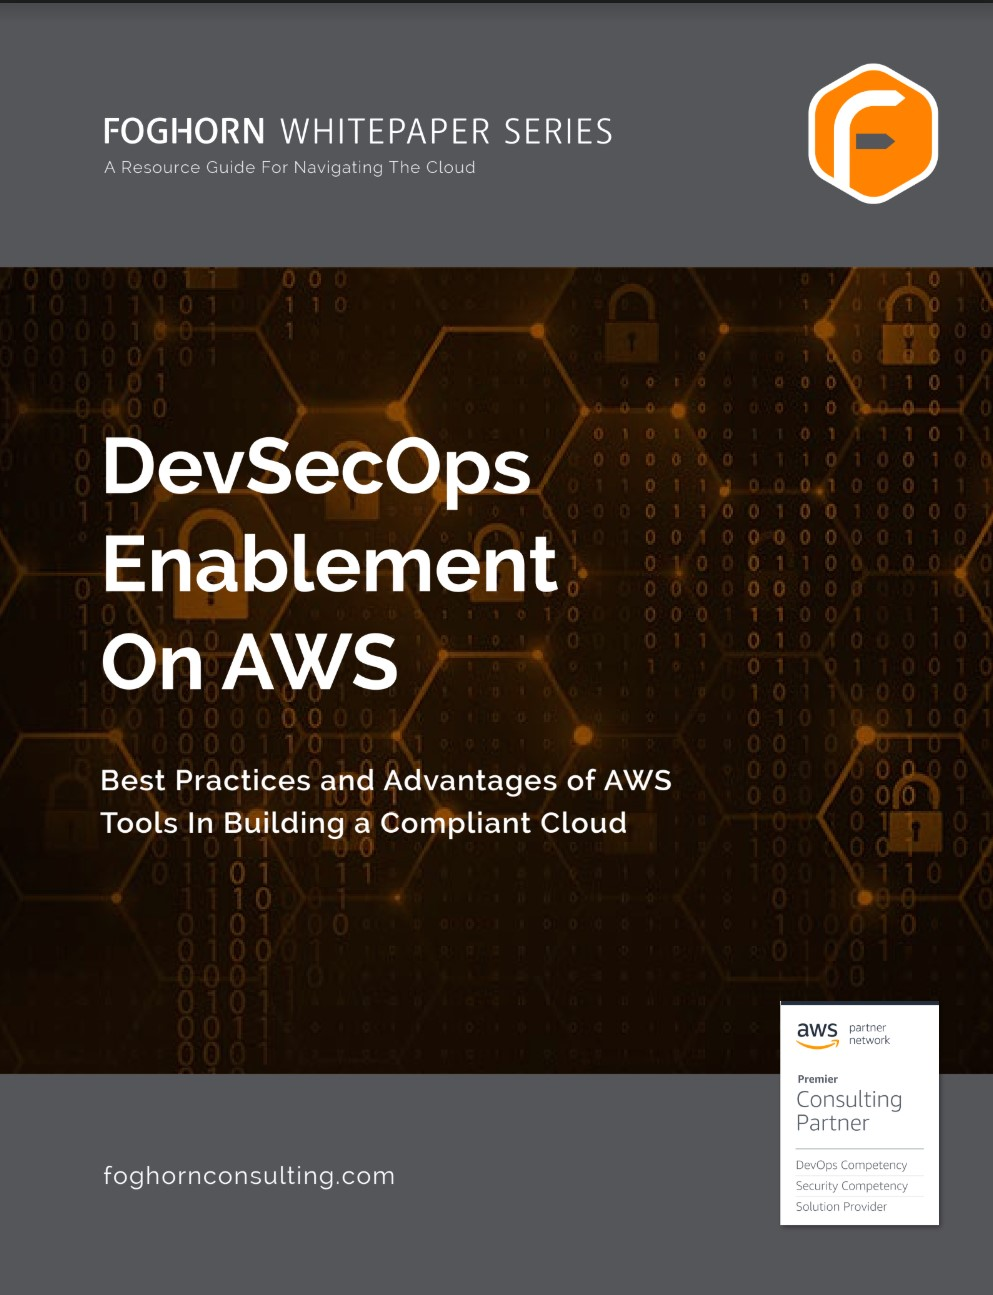 devsecops enablement on aws whitepaper